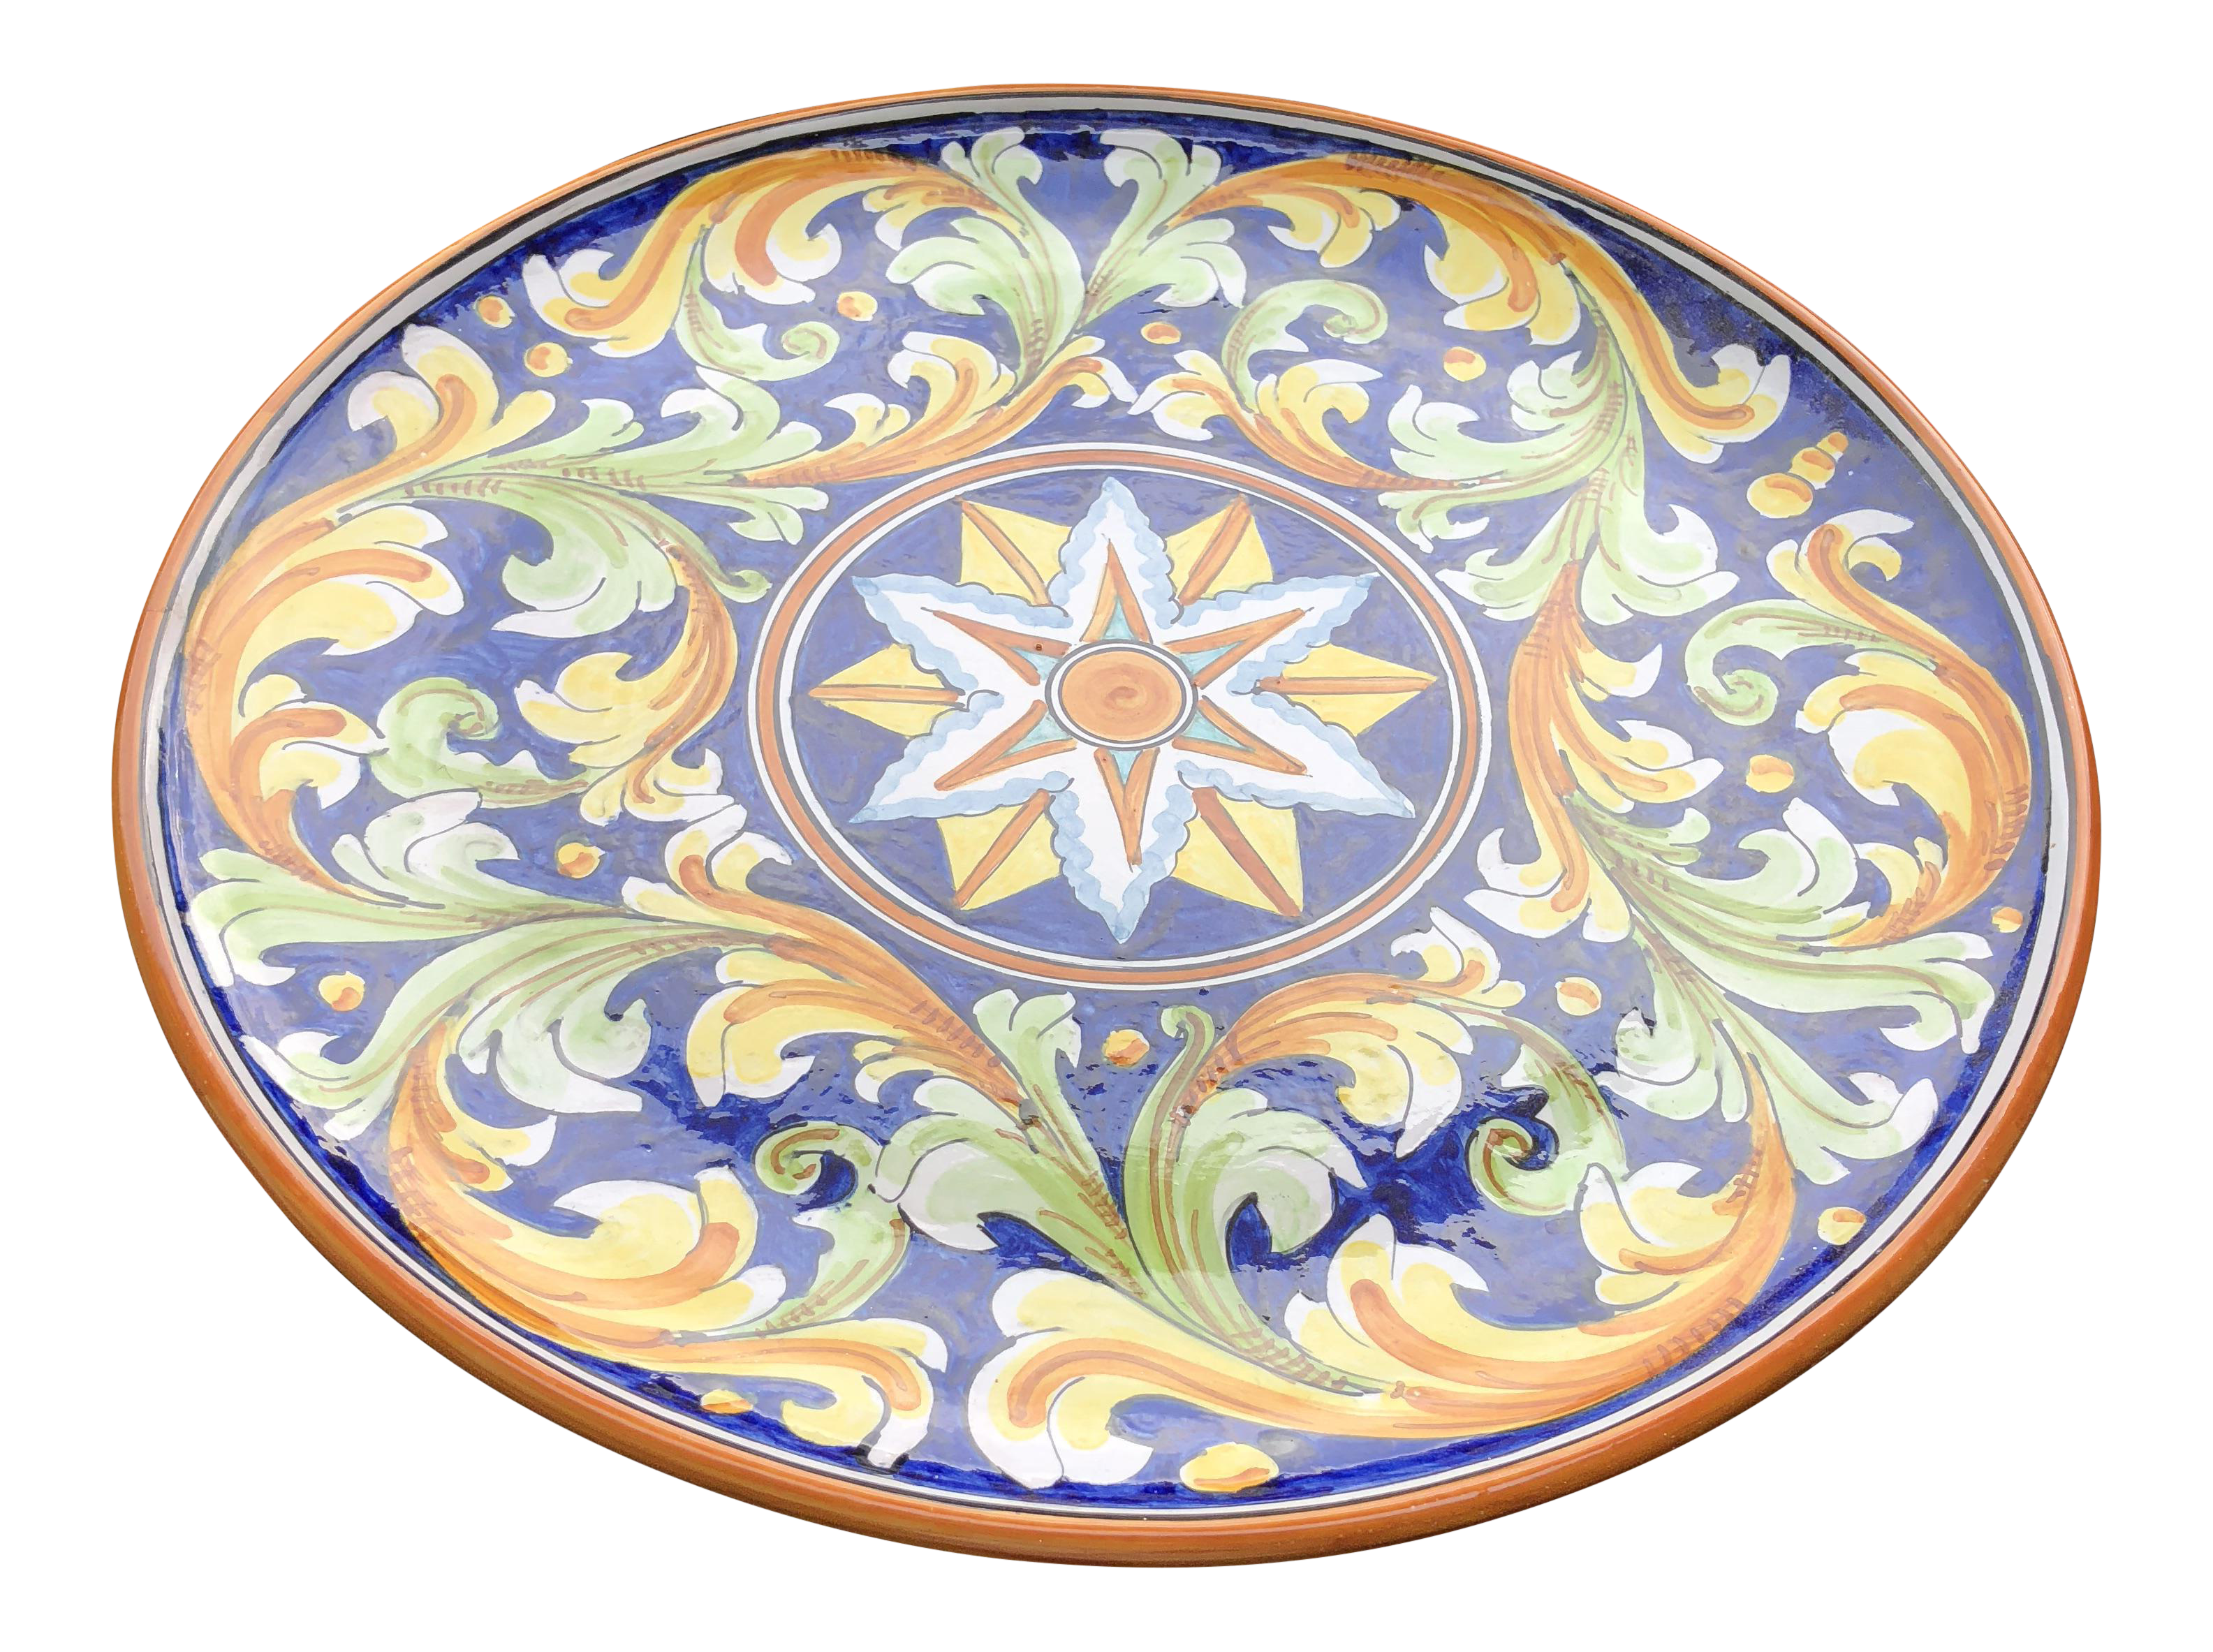 Italian Ceramic Decorative Plate Wall Hanging  sc 1 st  Chairish : italian decorative wall plates - Pezcame.Com